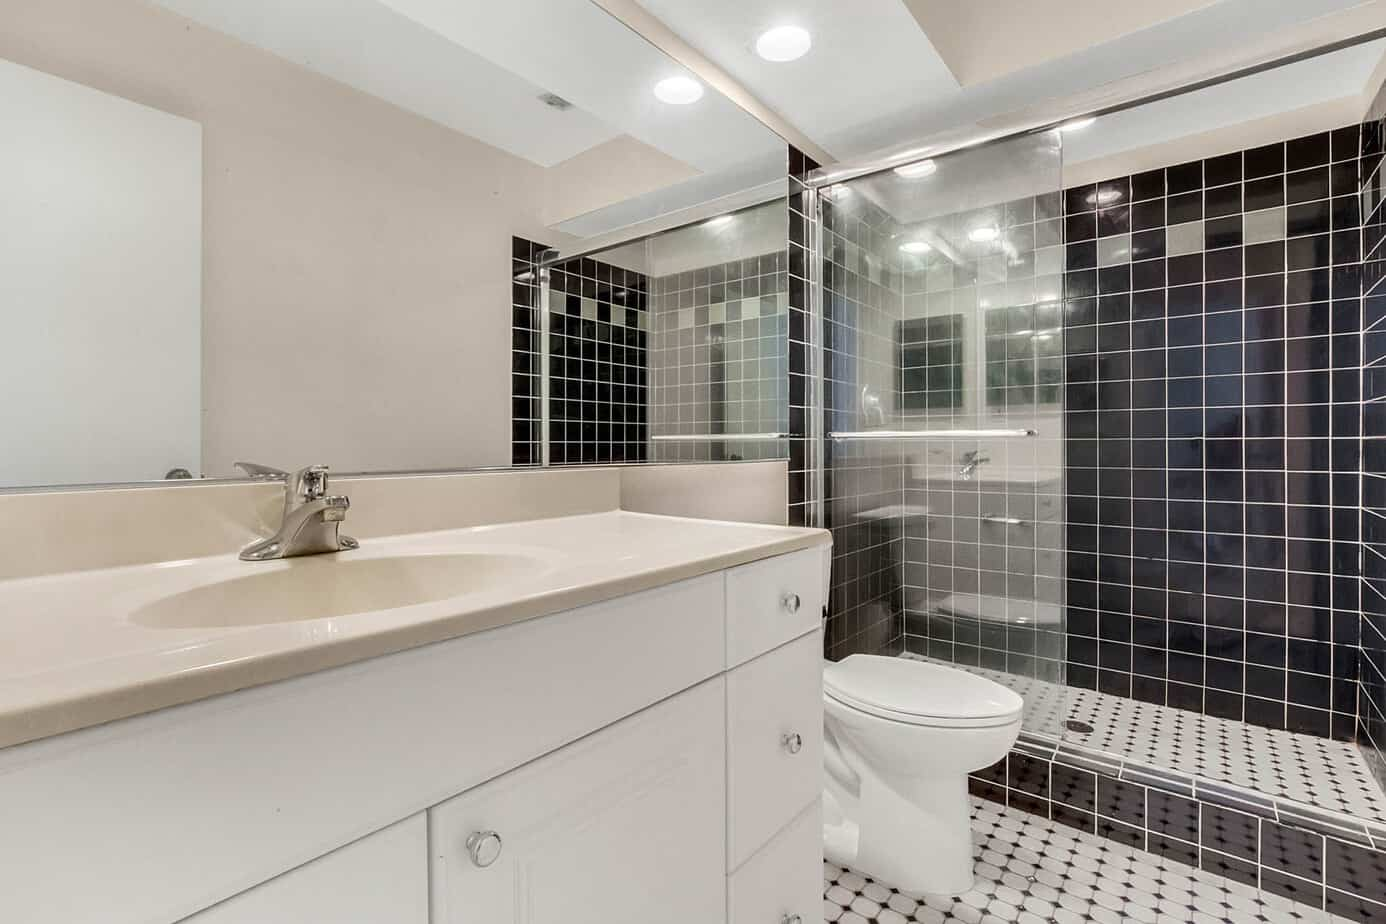 image of bathroom at 408 S Arrawana Ave Tampa FL 33609 with black tiles and white cabinets